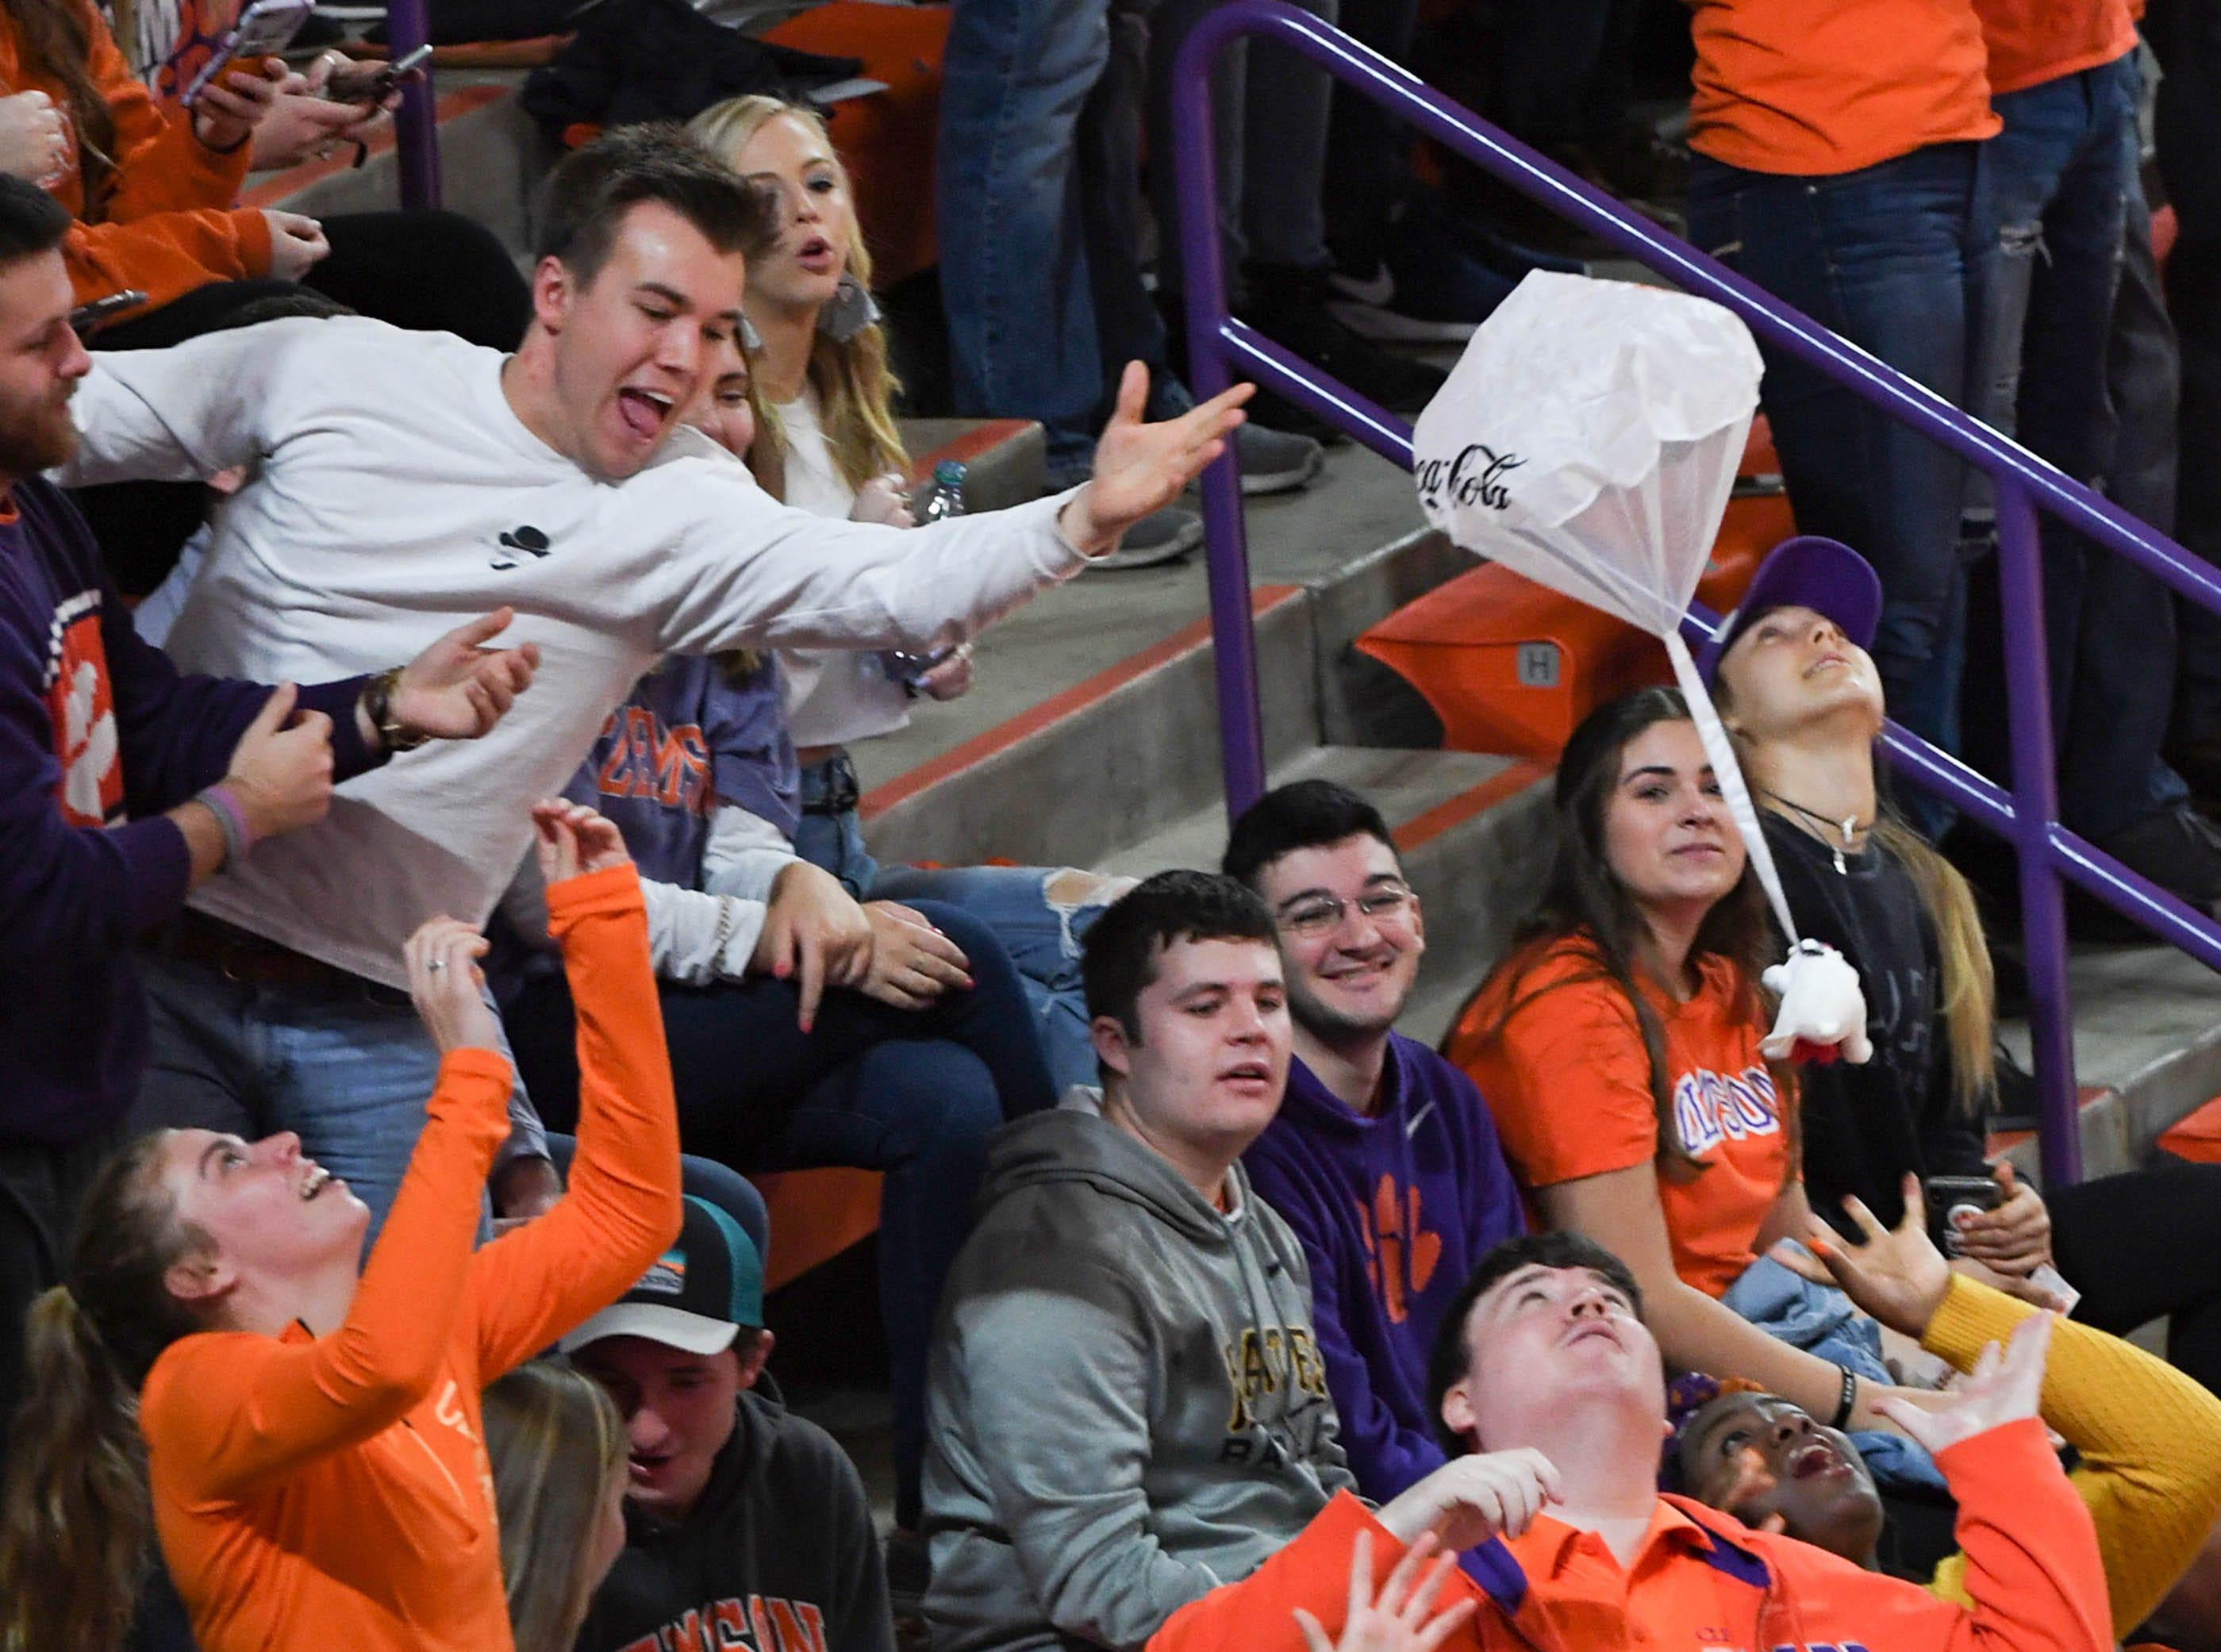 Clemson fans reach for toys with parachutes dropping from the catwalk in a break at the Syracuse game, during the first half in Littlejohn Coliseum in Clemson Saturday, March 9, 2019.